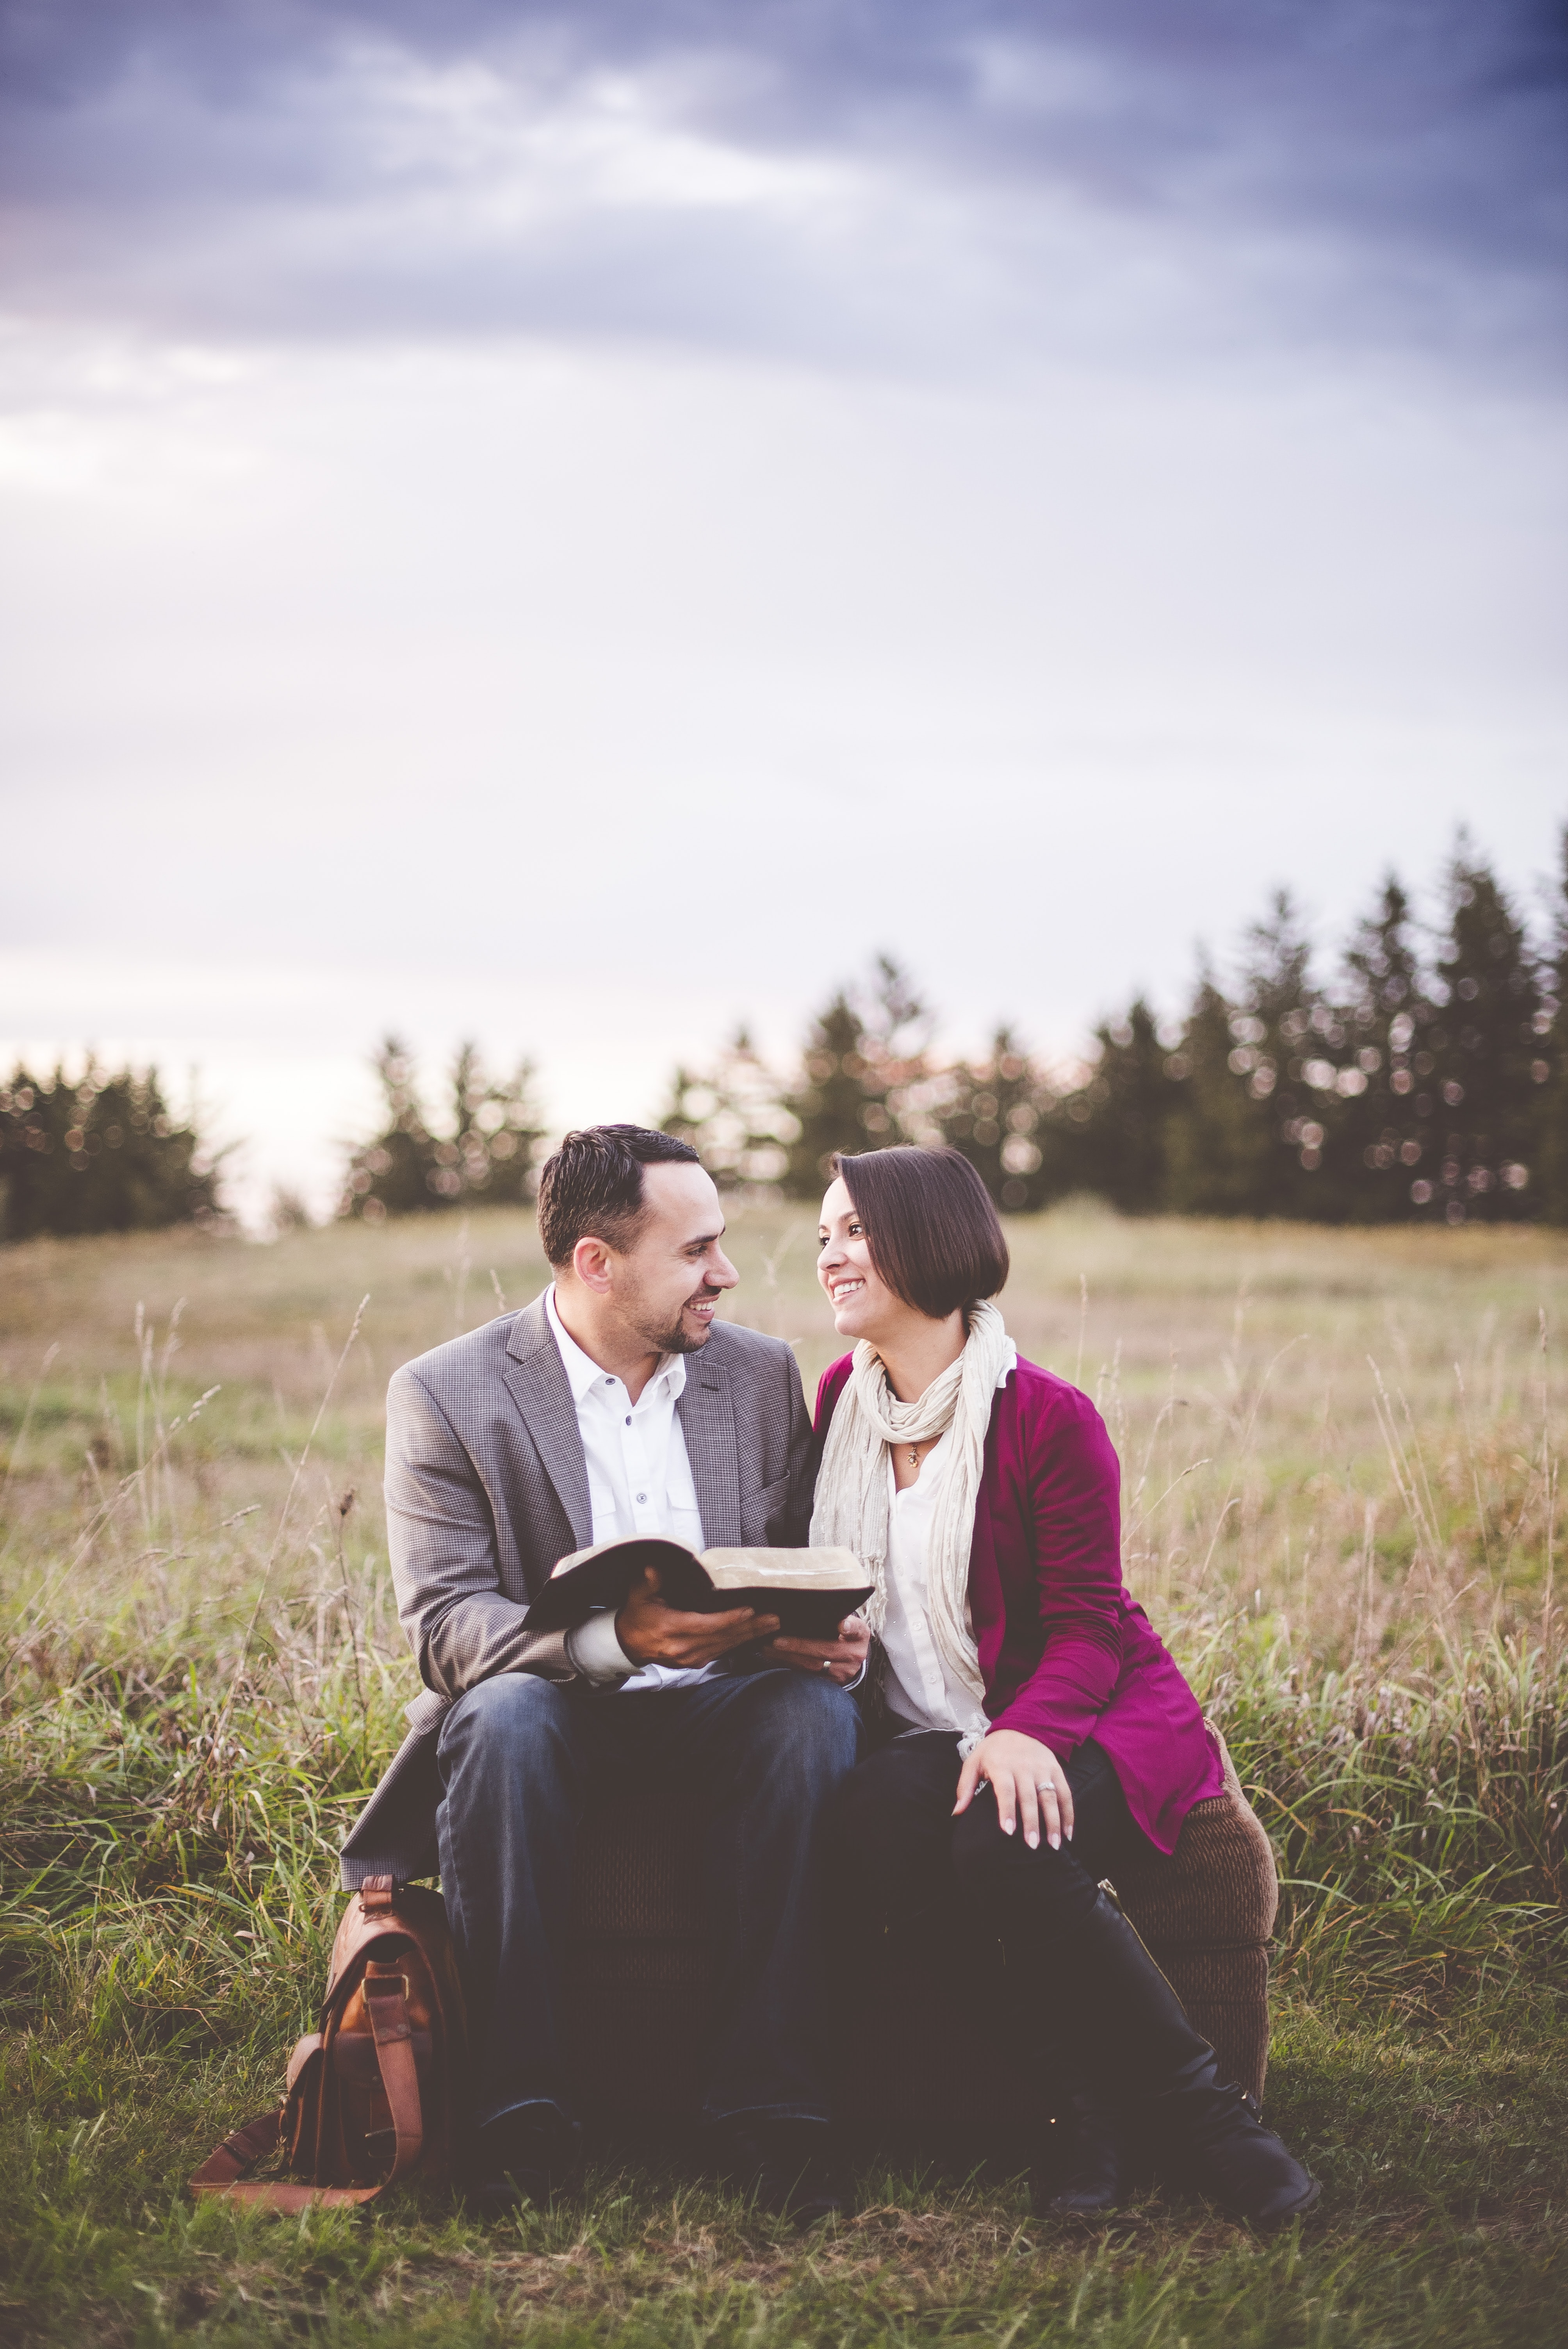 A married couple sits looking at each other on an ottoman outdoors. He's holding a book